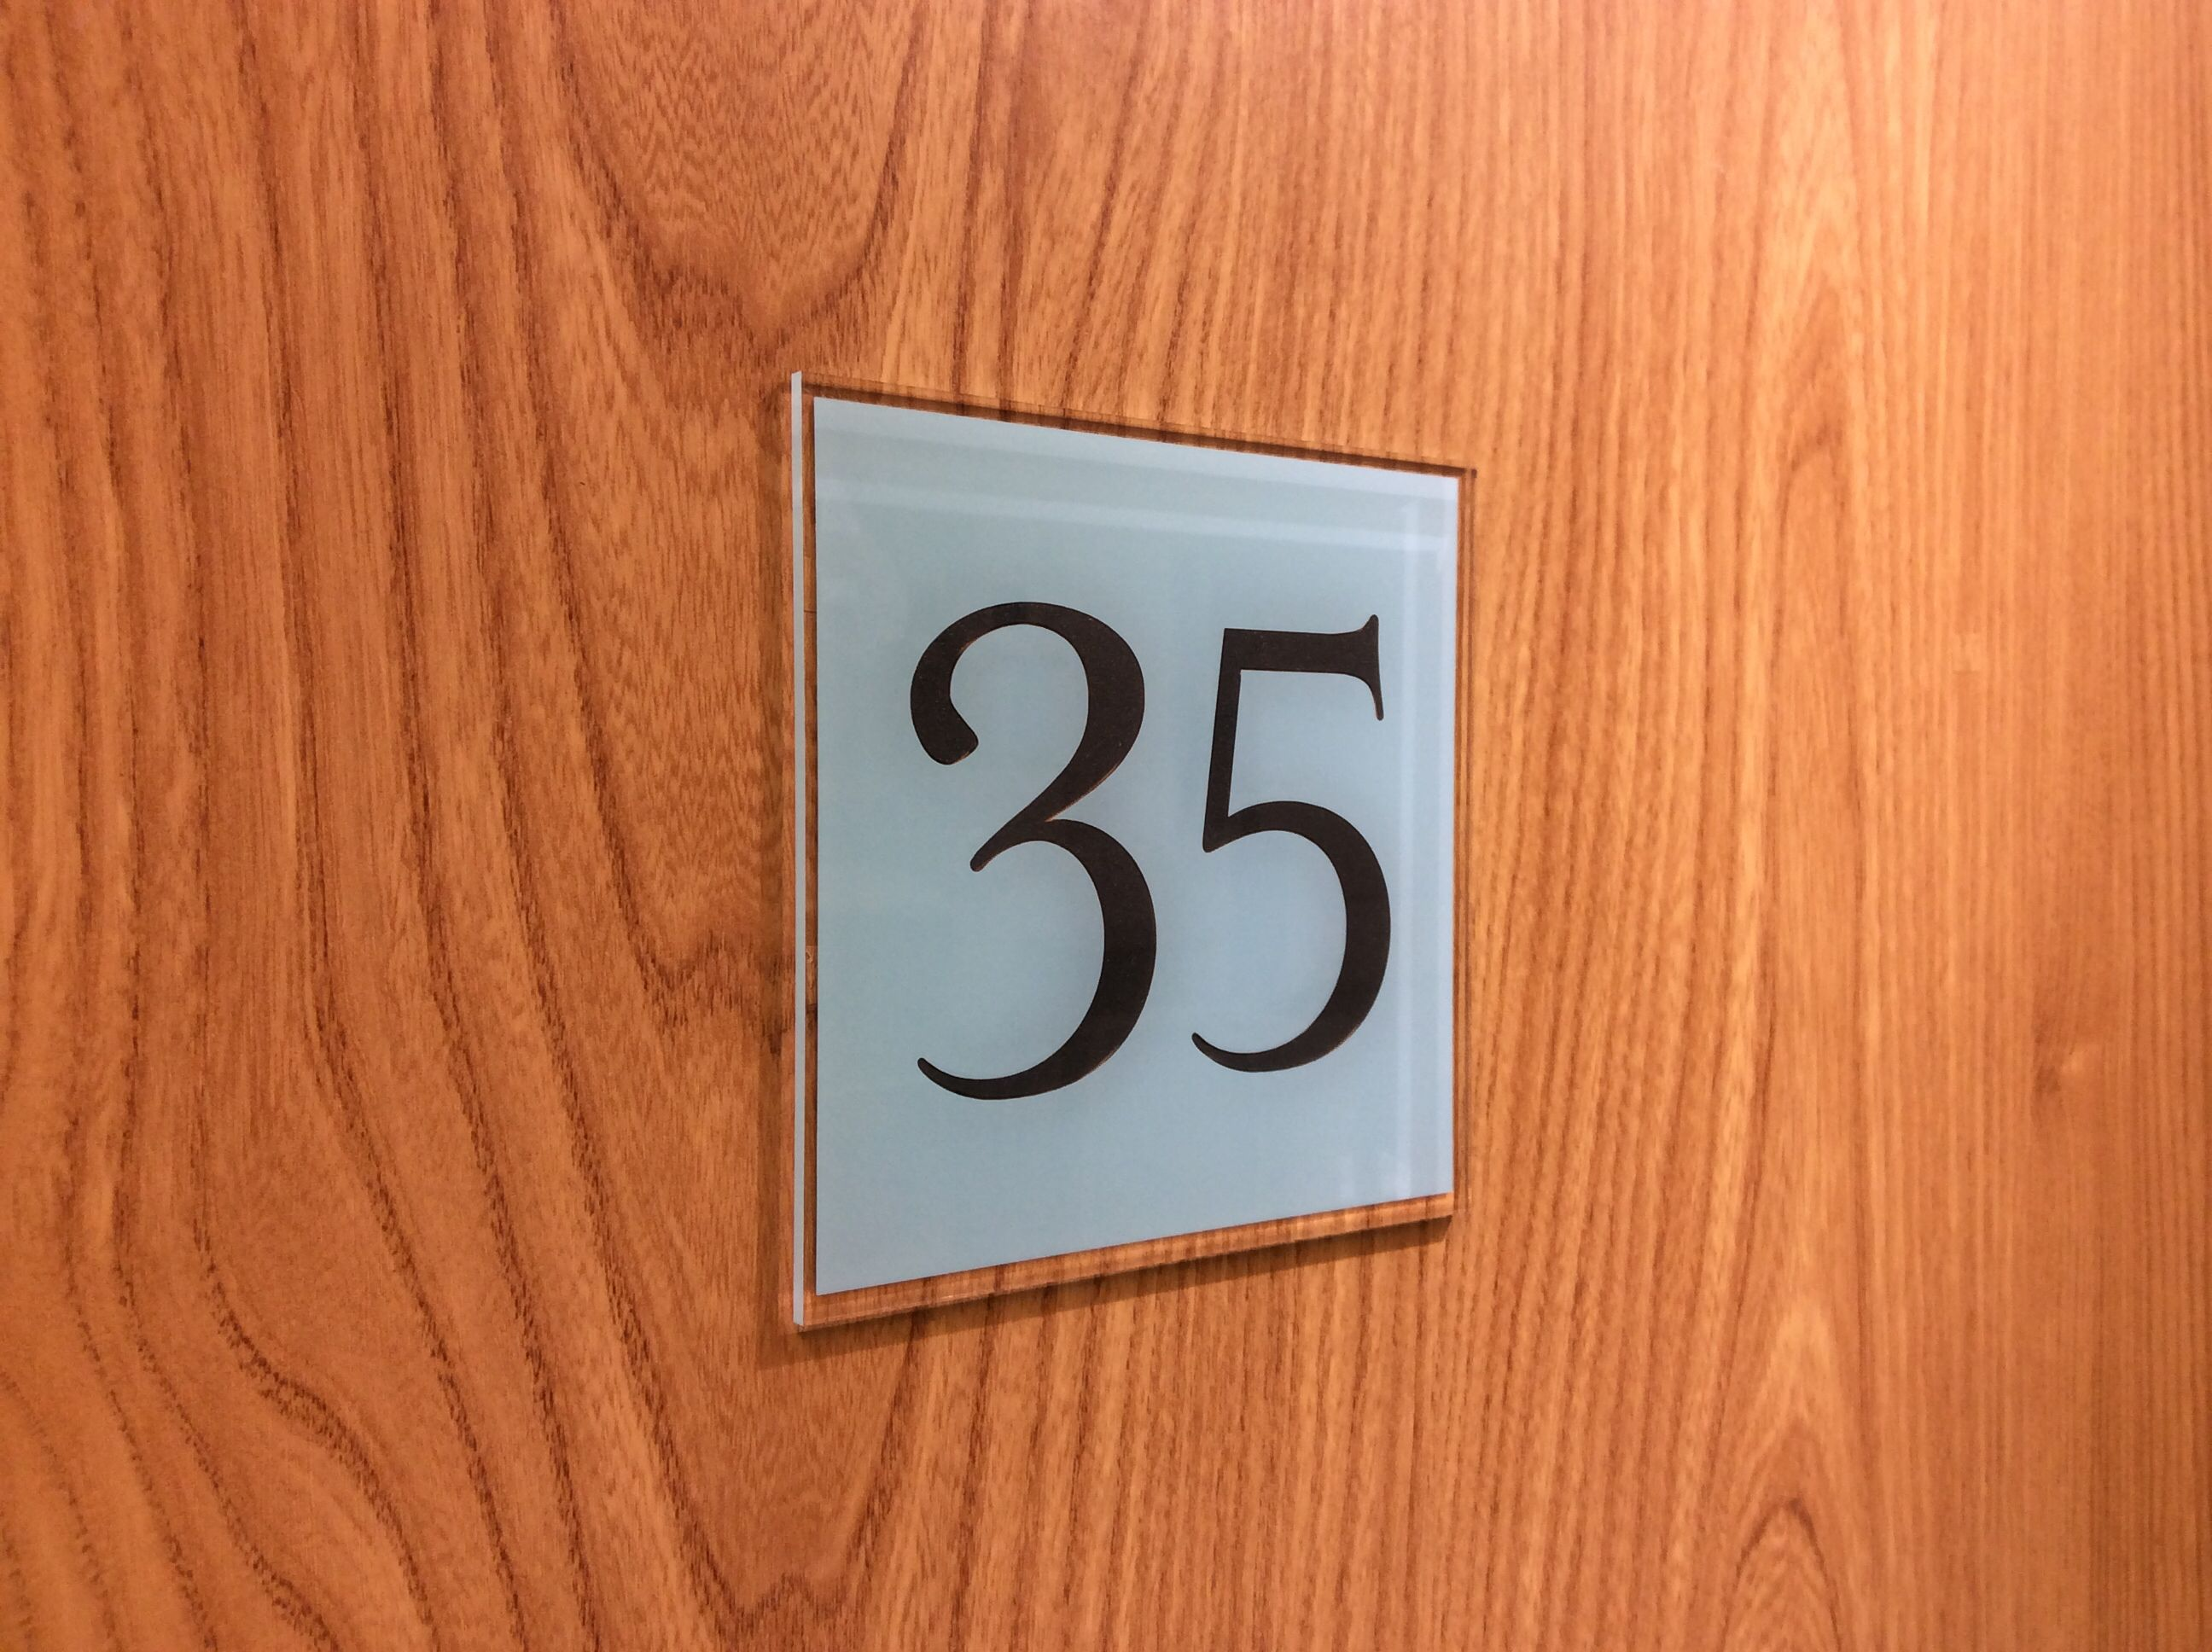 Hotel Room Numbers Flat Numbers #numbers 35 Door Number Plate For #room  #hotel